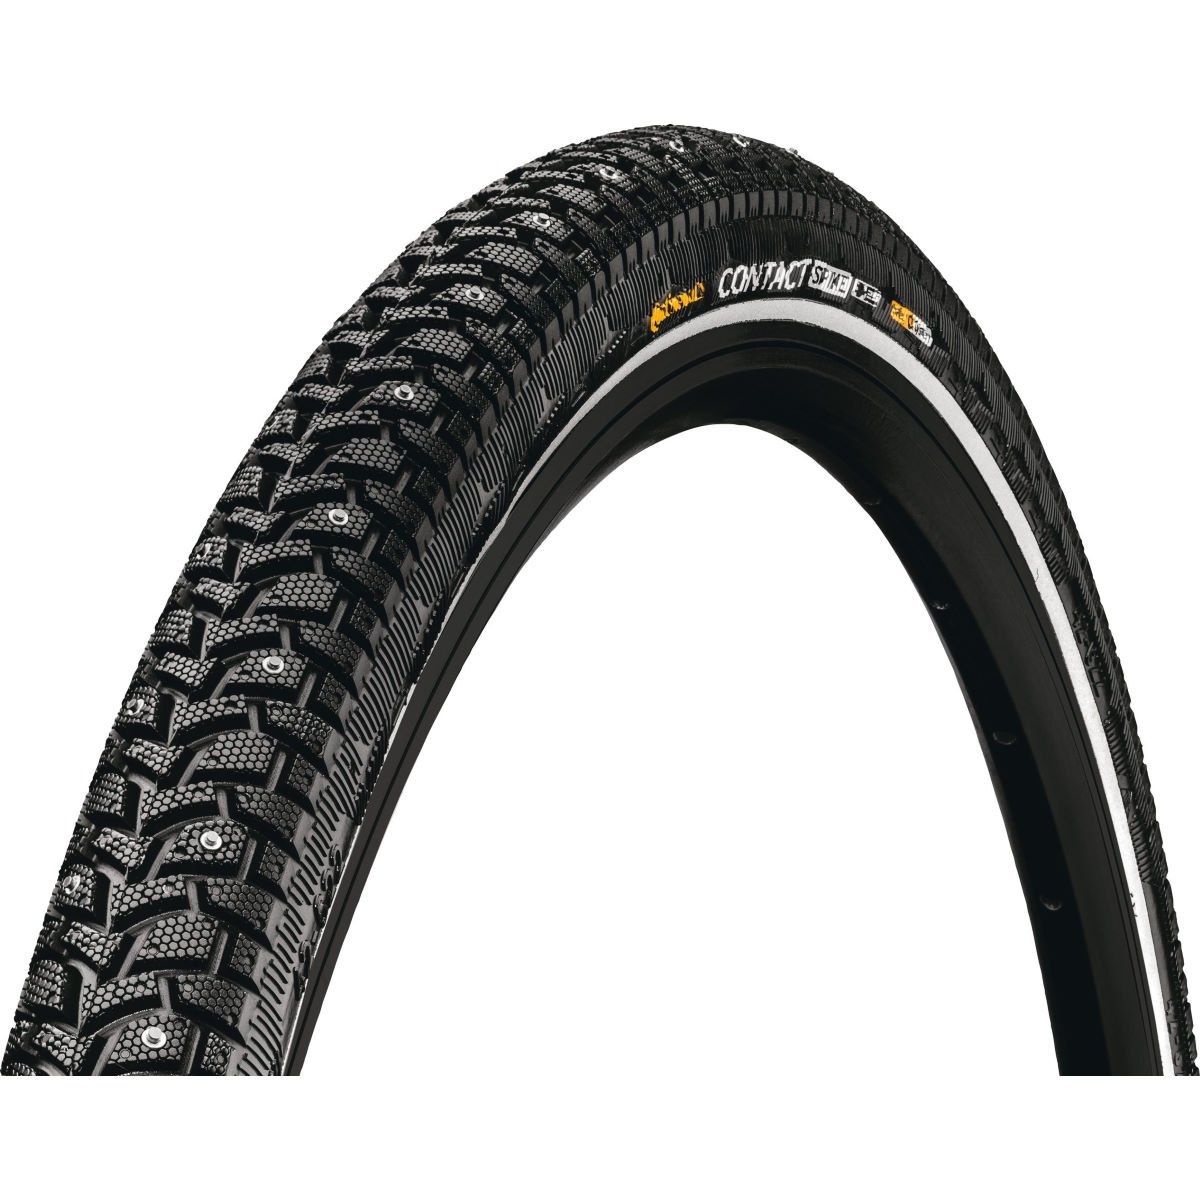 Continental Continental Contact Spike 120 Wire Bead Tyre   Tyres